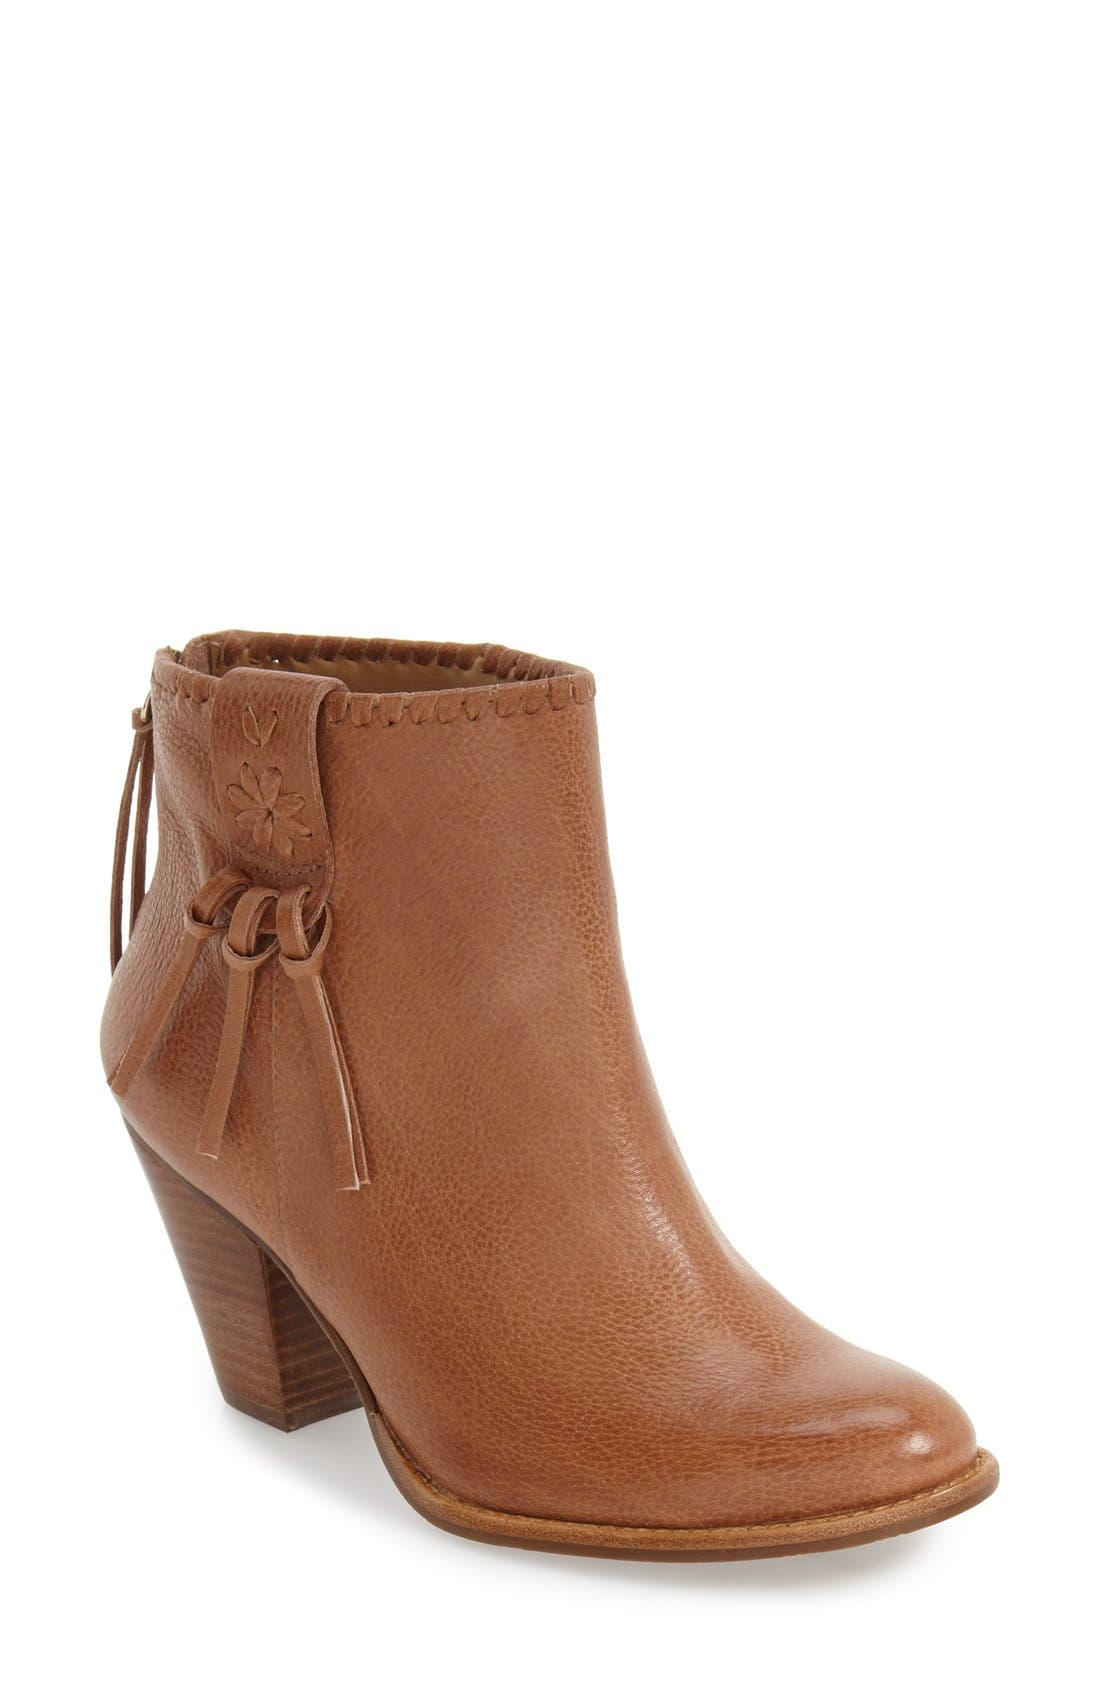 'Greer' Bootie,                             Main thumbnail 1, color,                             200